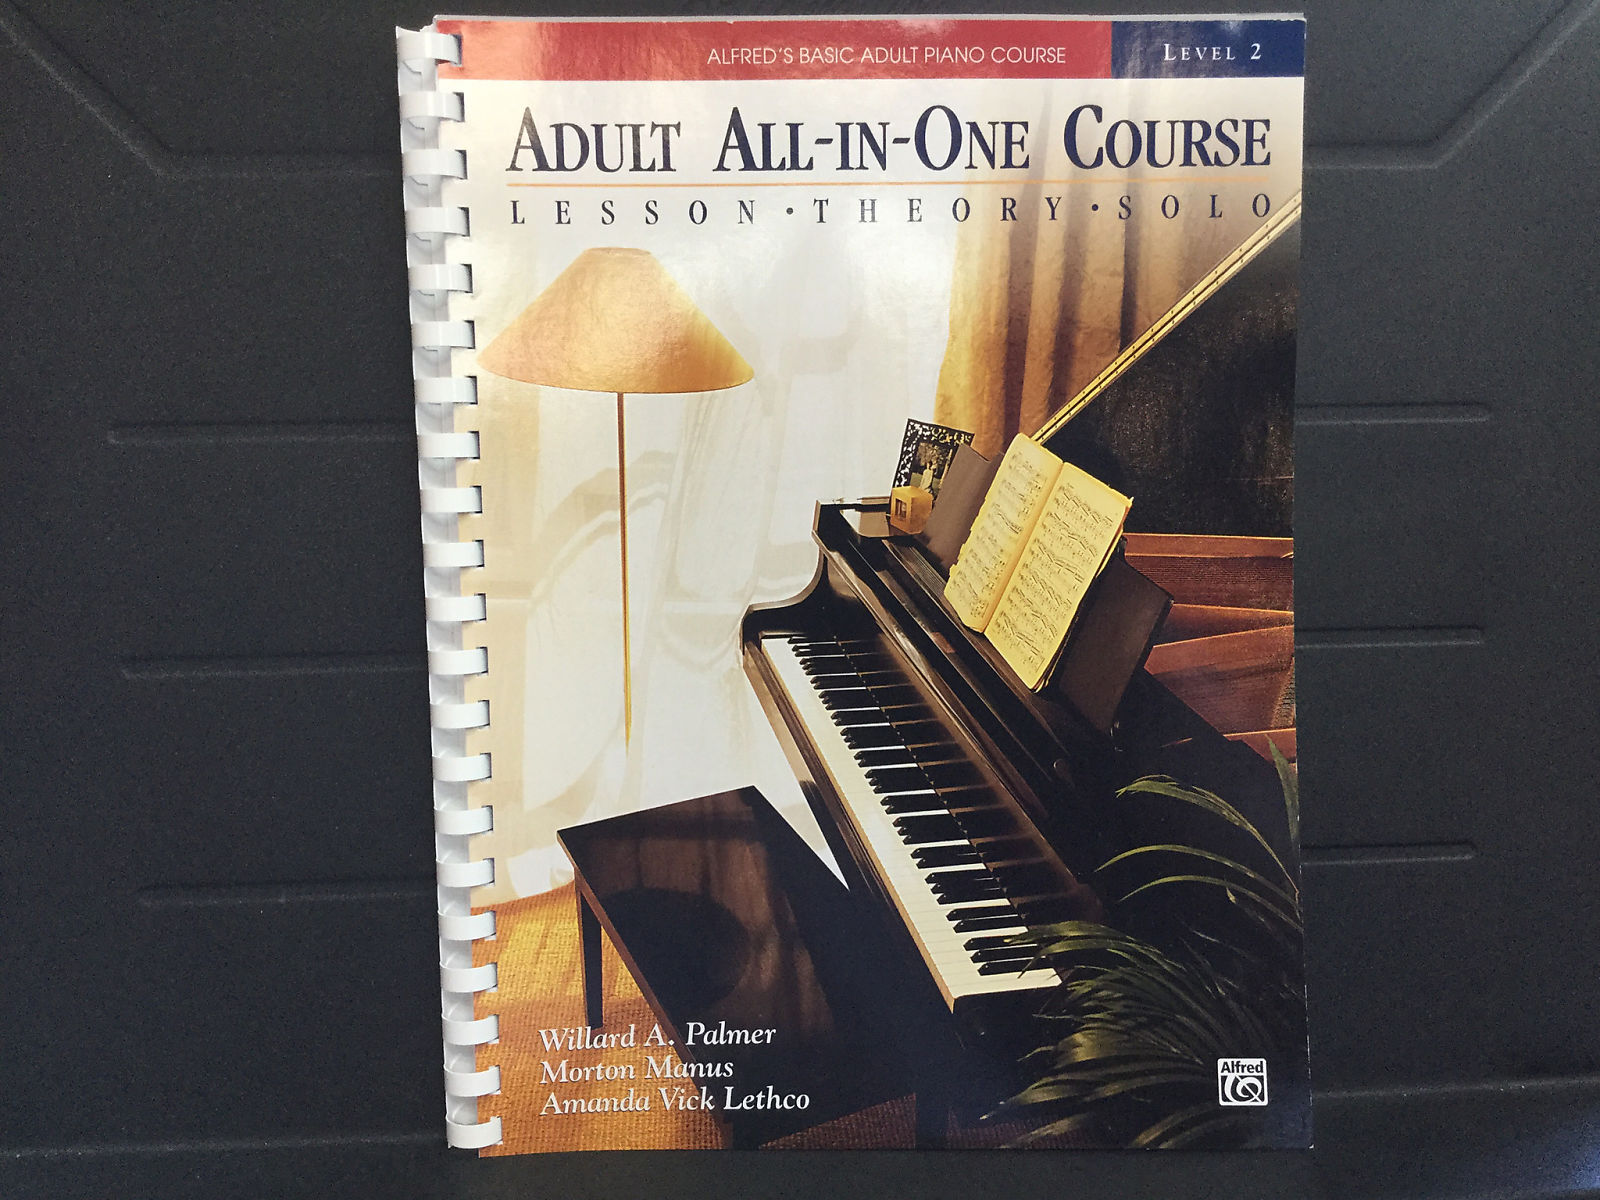 Alfred piano adult, nude mother comics